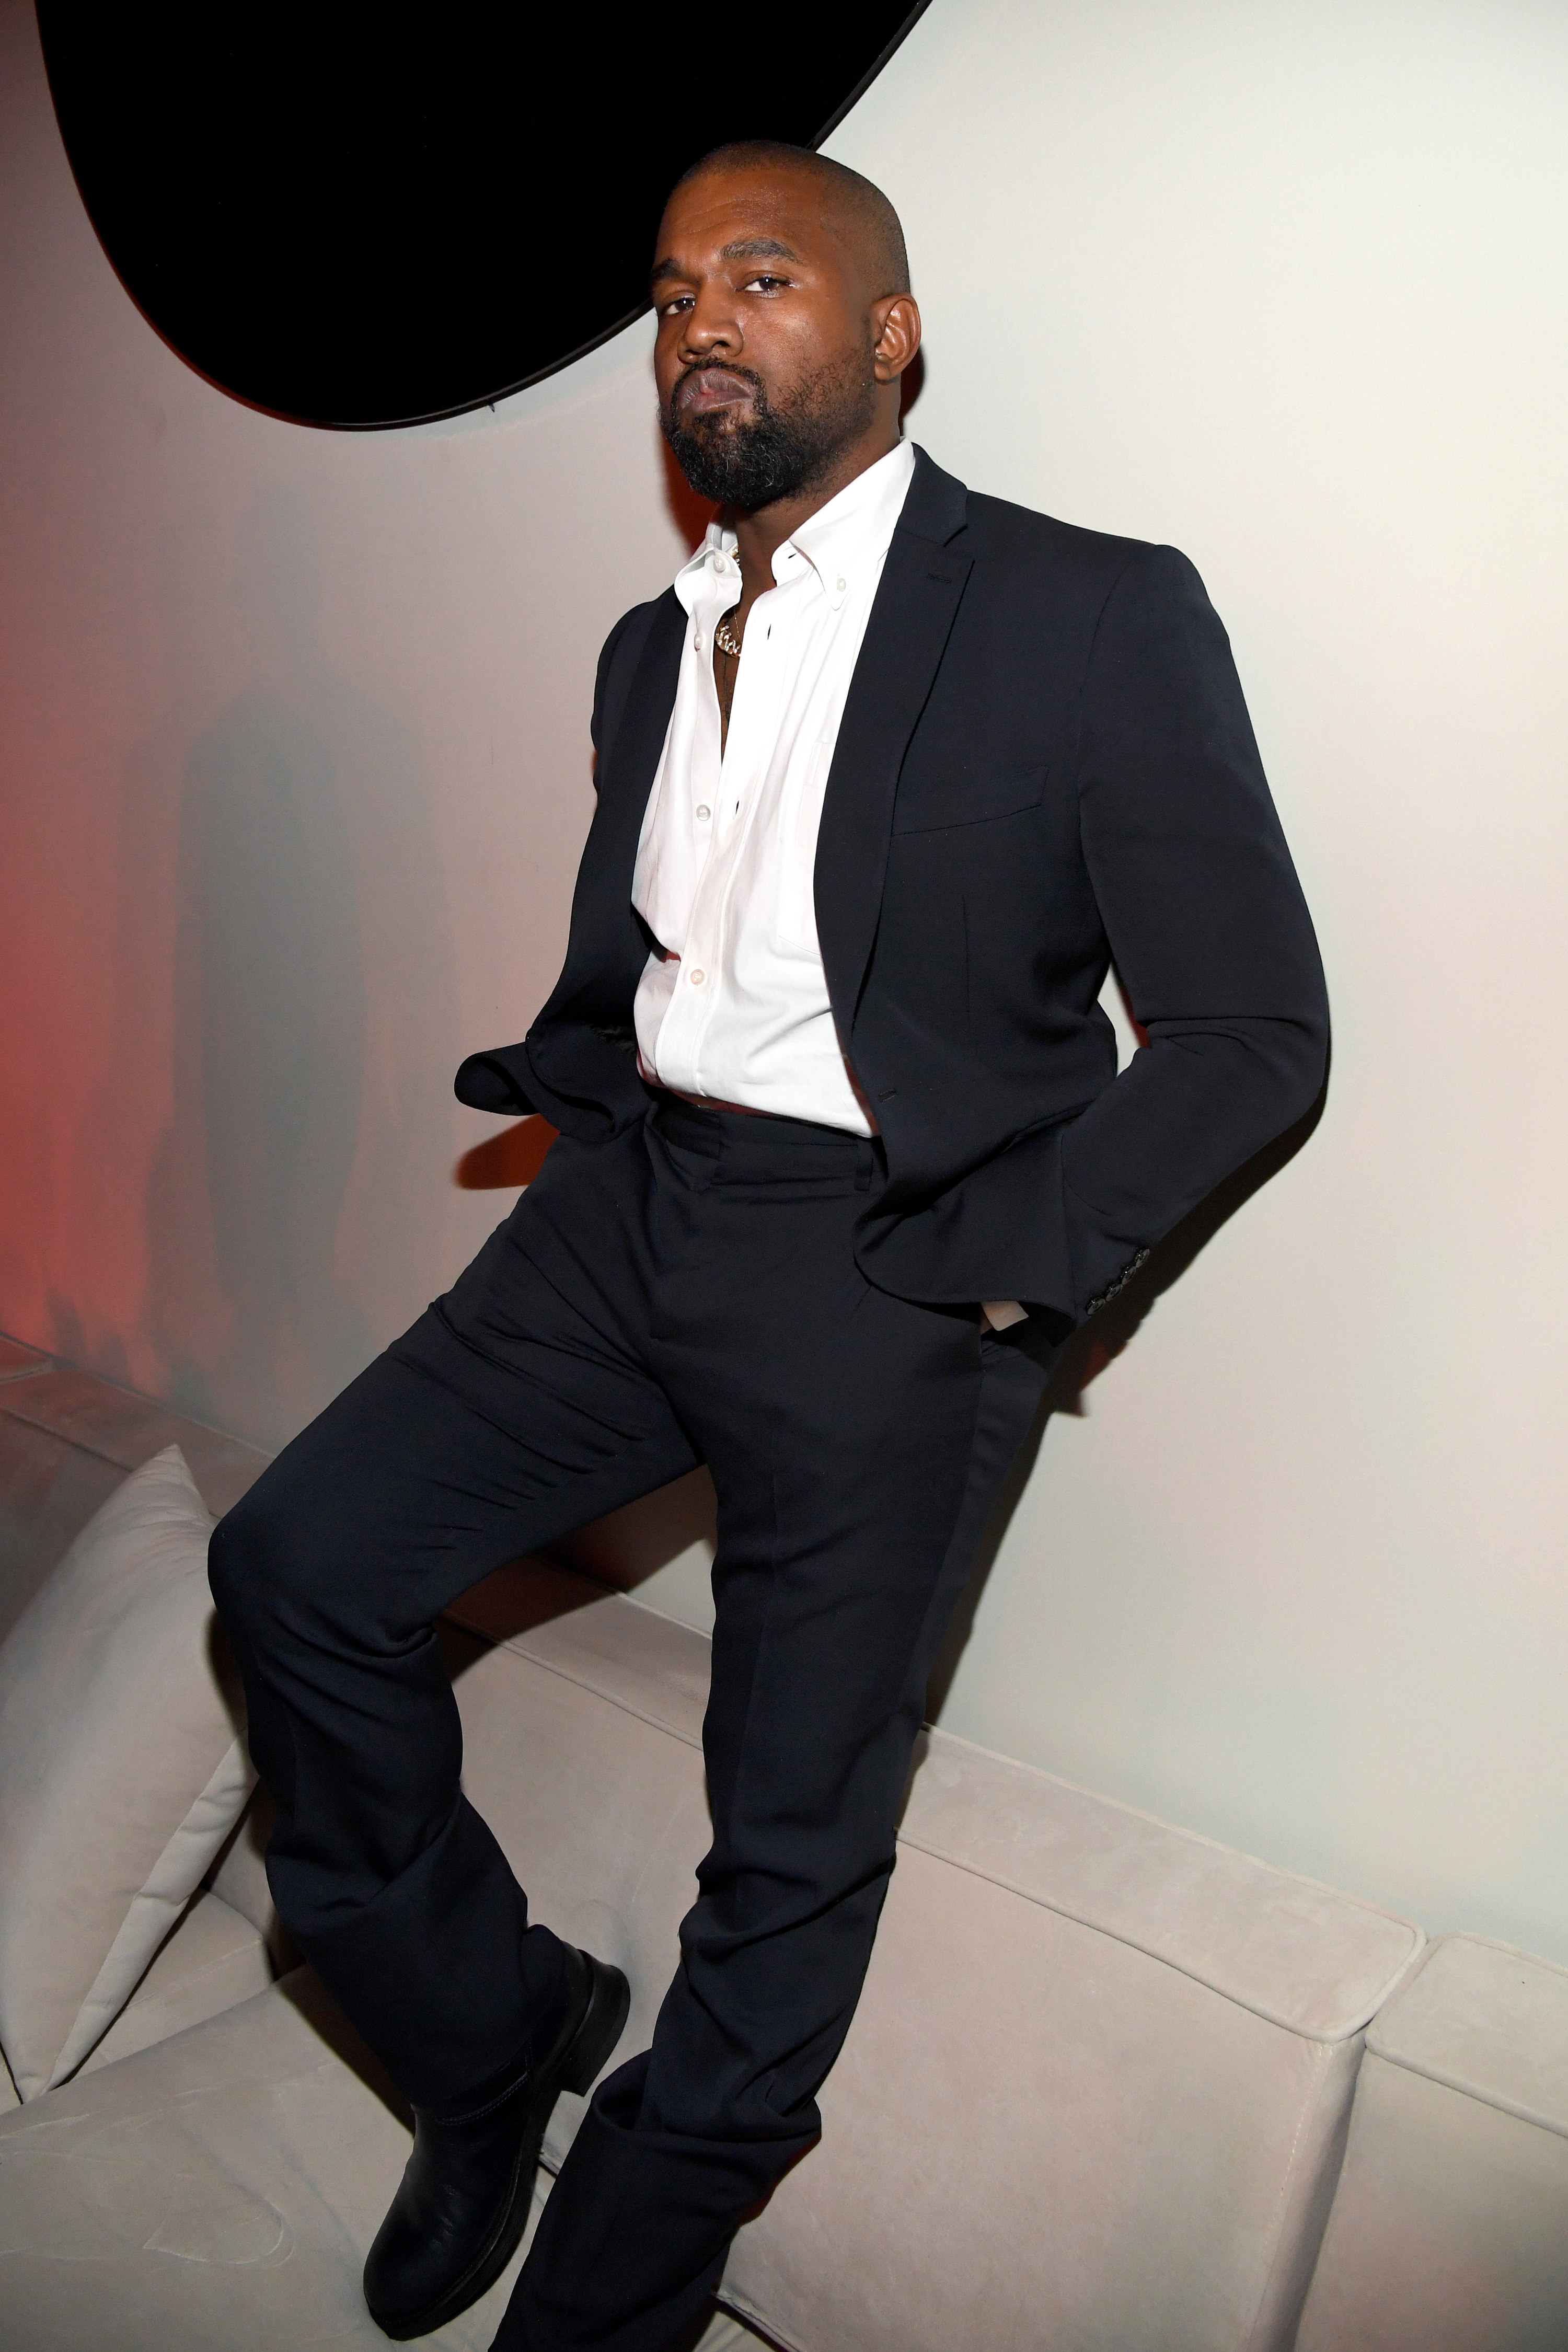 West stands on a couch while leaning against a wall and dressed in a suit